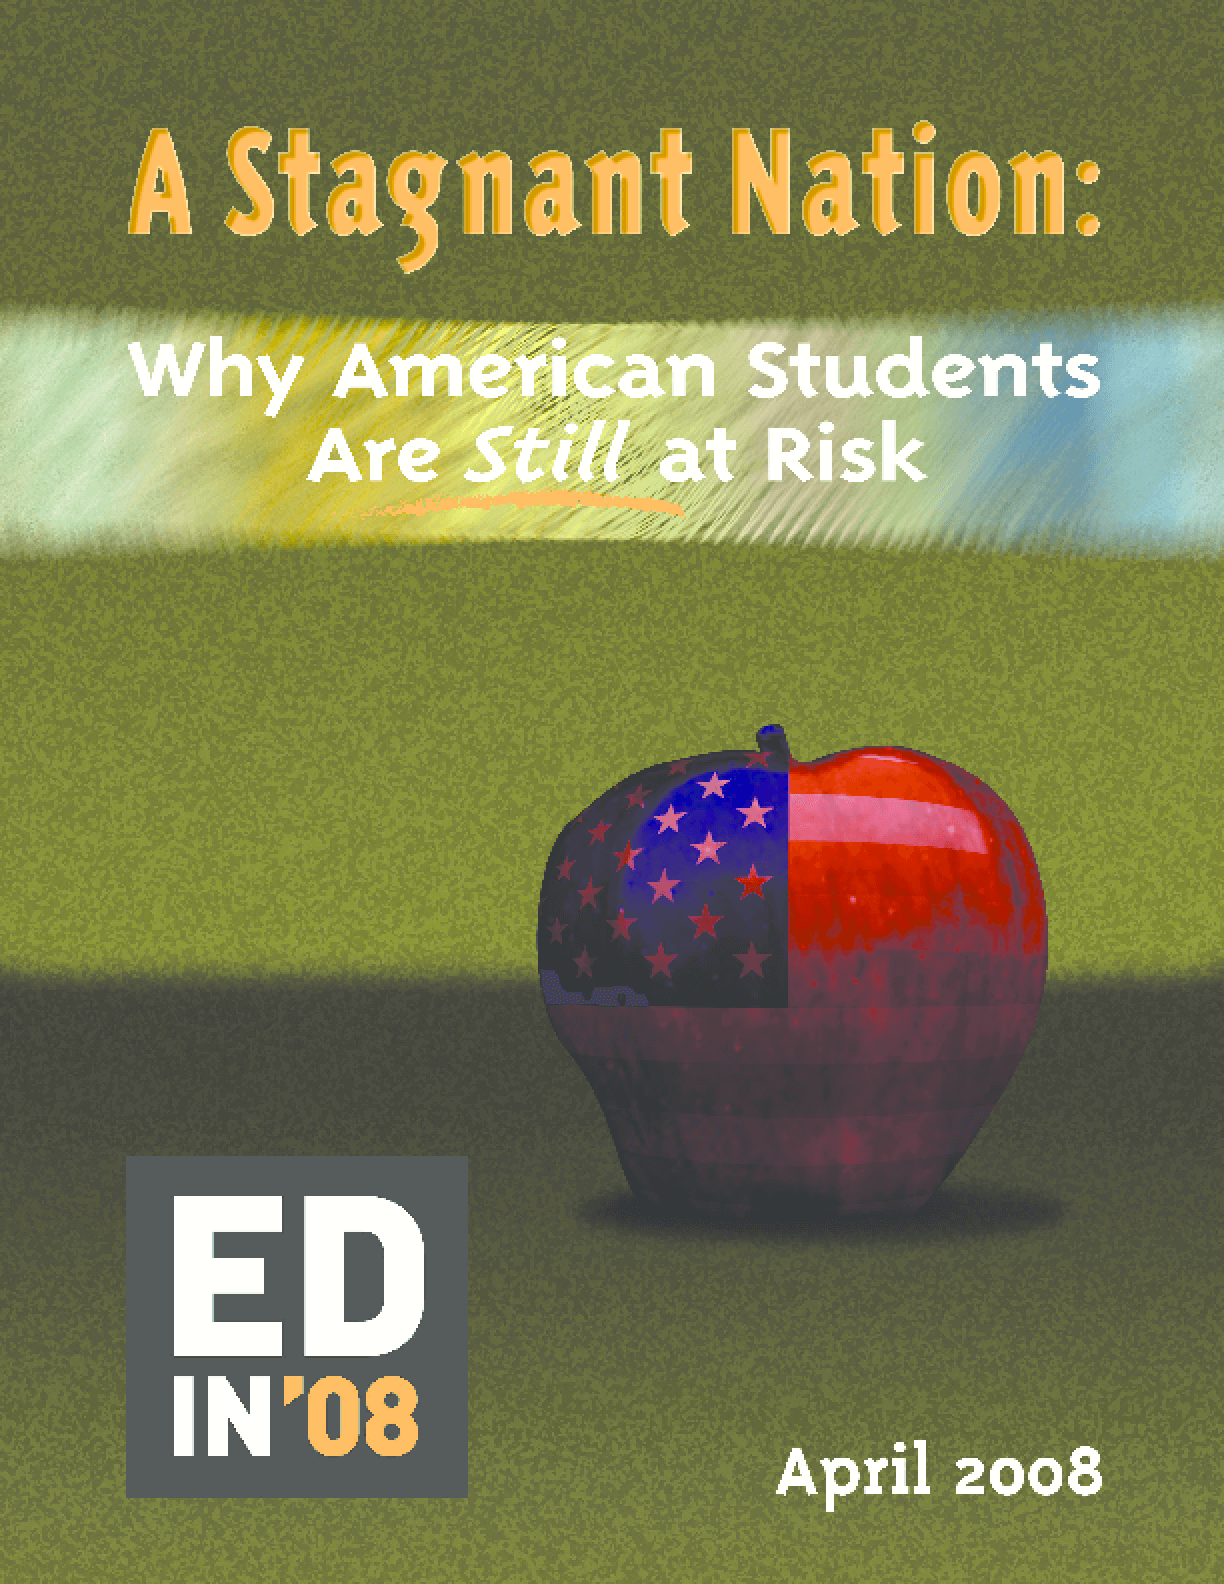 A Stagnant Nation: Why American Students Are Still at Risk